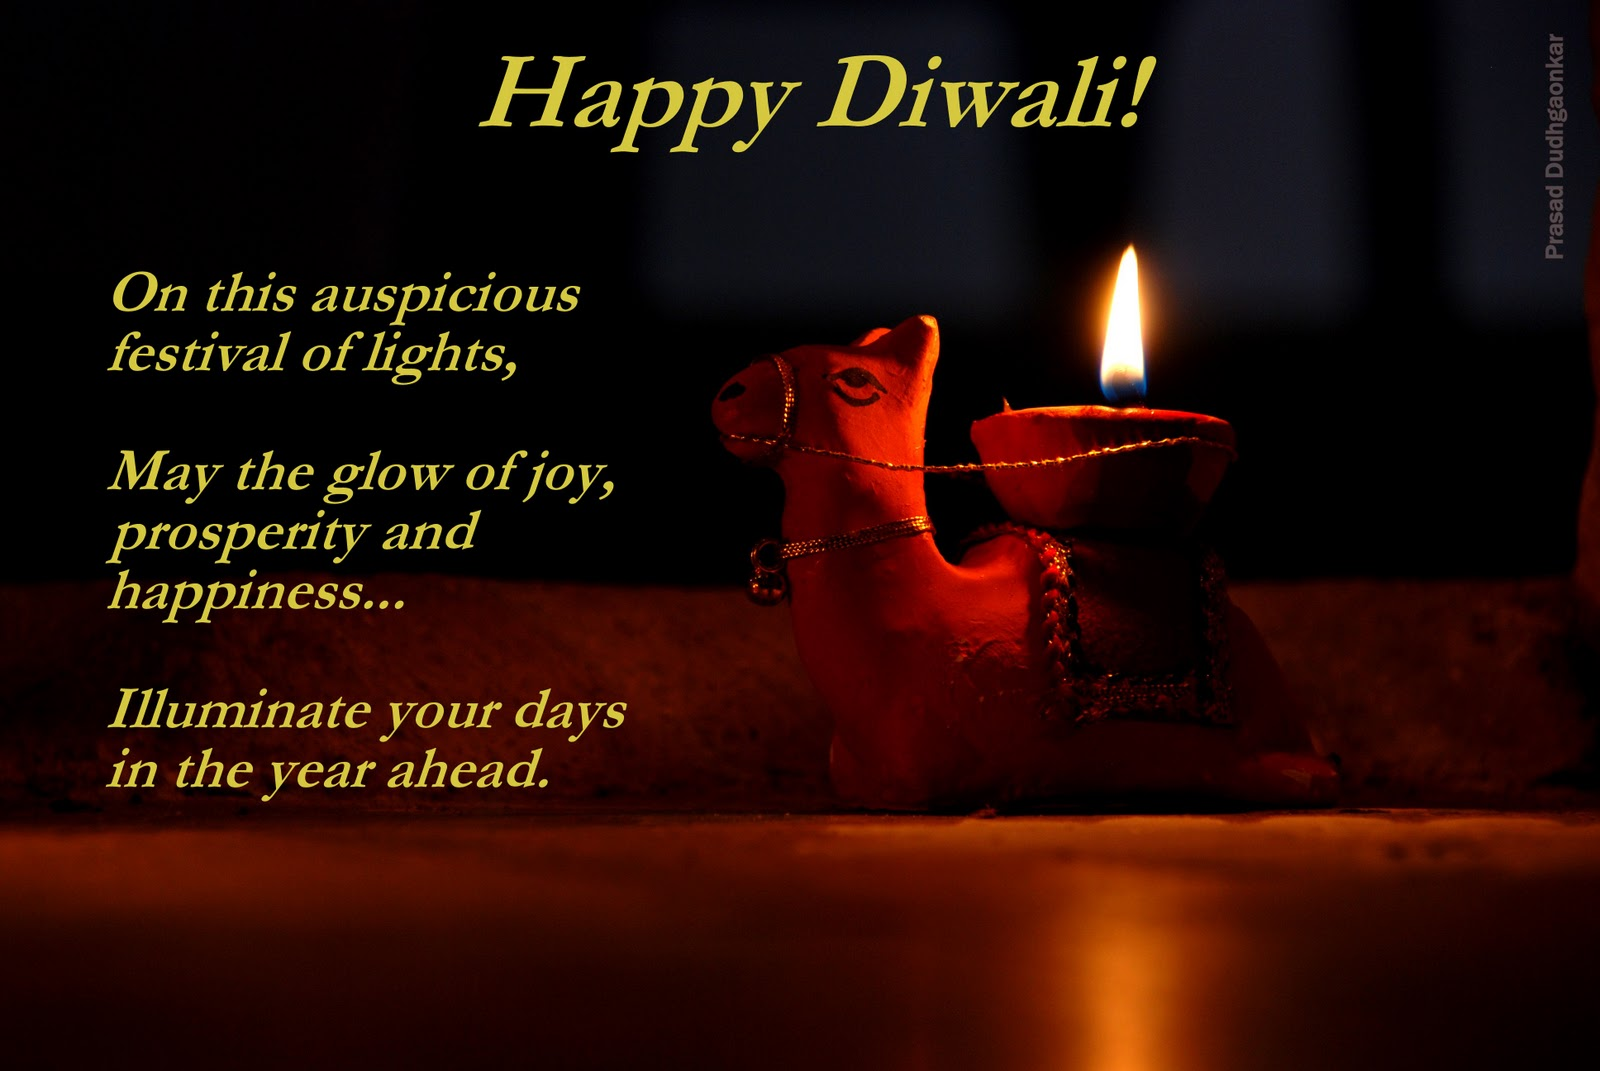 Top 100 happy diwali images wishes messages greeting quotes top 100 happy diwali images wishes messages greeting quotes 2018 happy diwali 2018 m4hsunfo